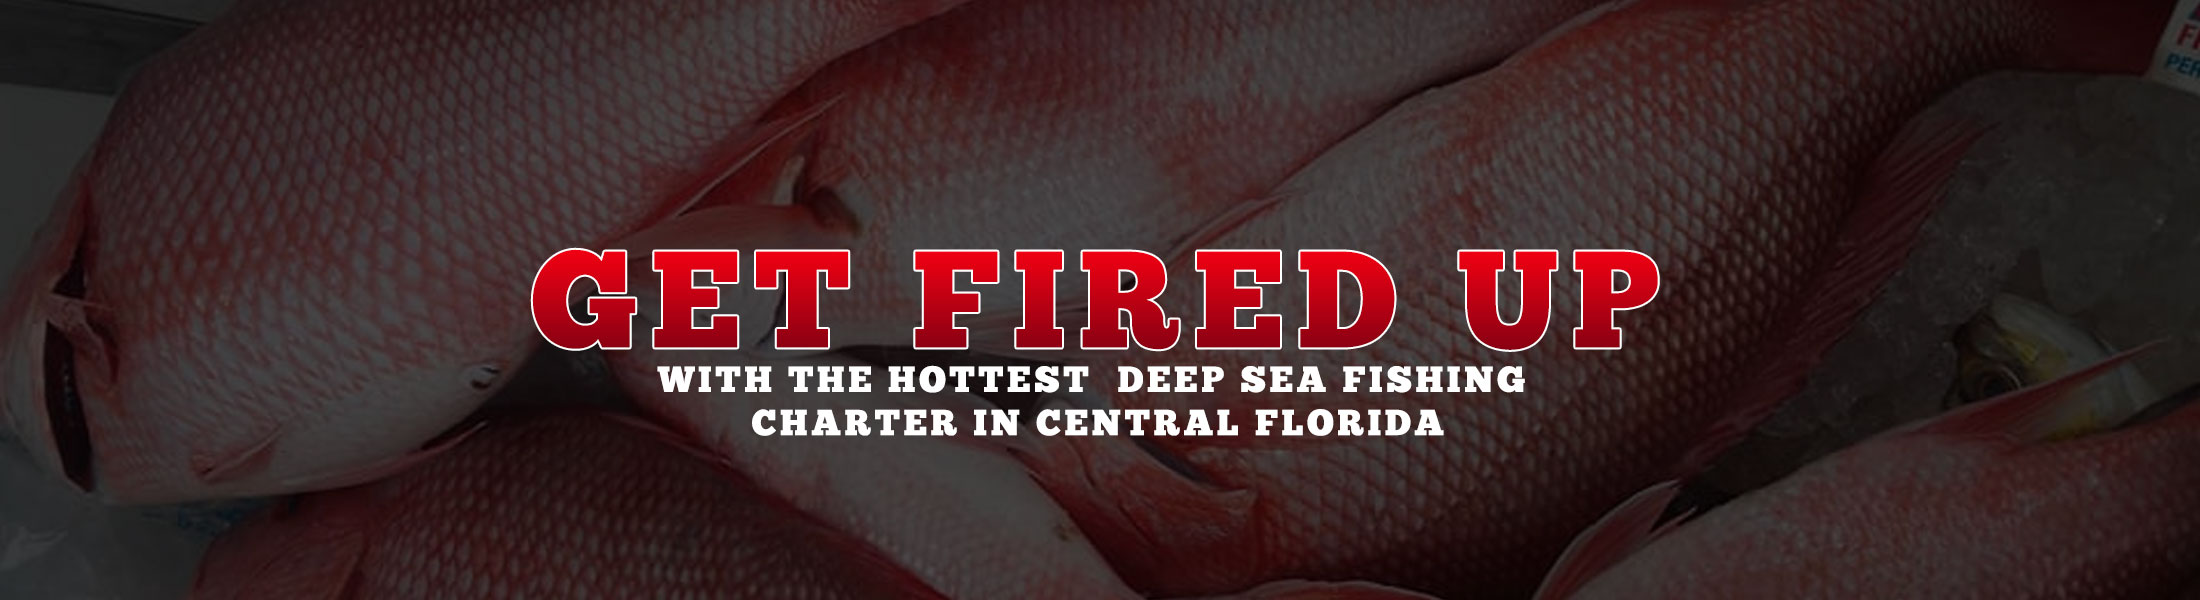 Get fired up with the hottest deep sea fishing charter in Cocoa Beach, Port Canaveral and across Central Florida!